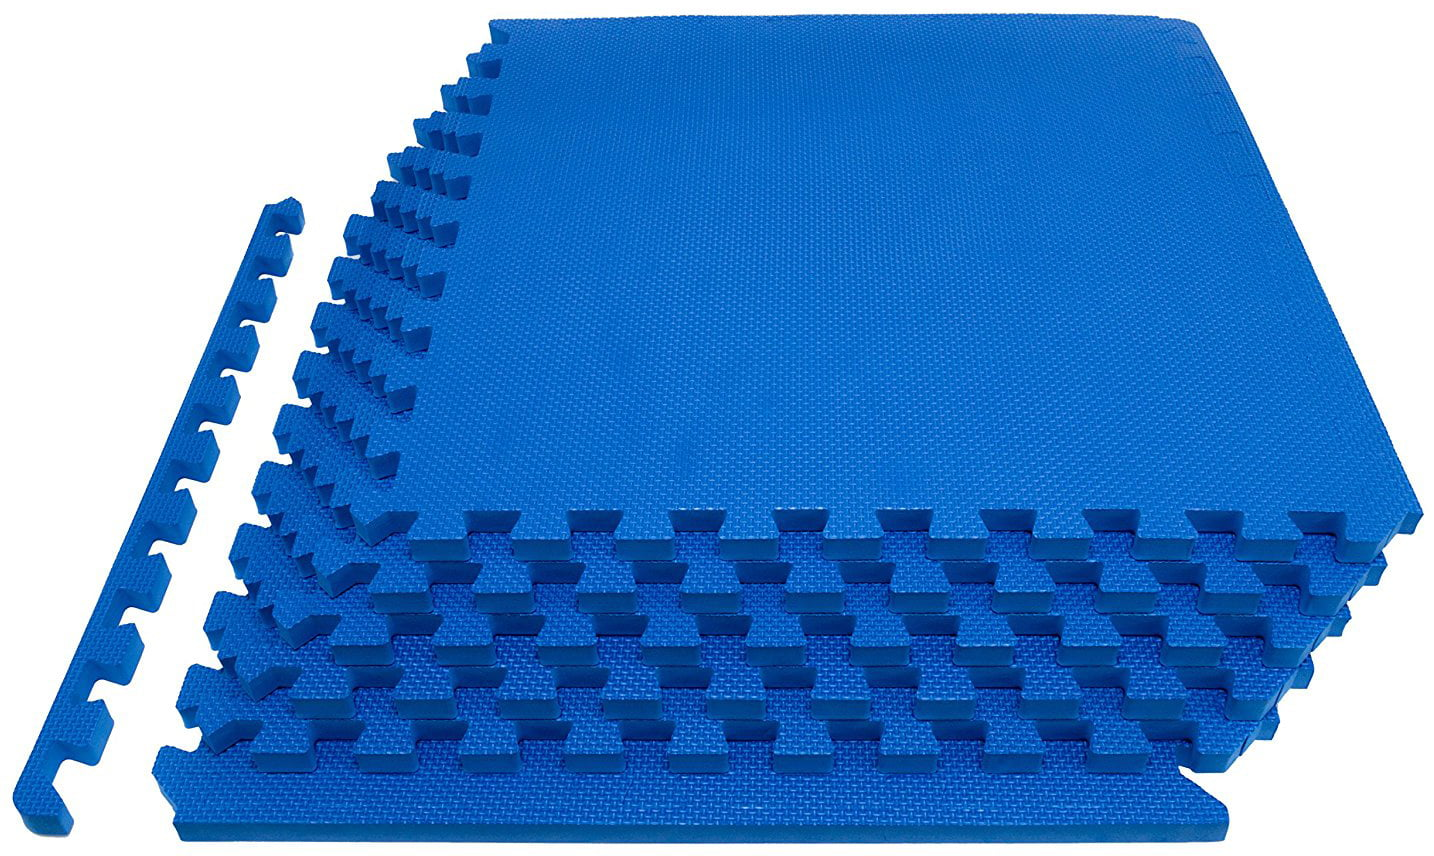 Puzzle Exercise Mat with High Quality EVA Foam Interlocking Tiles by BalanceFrom